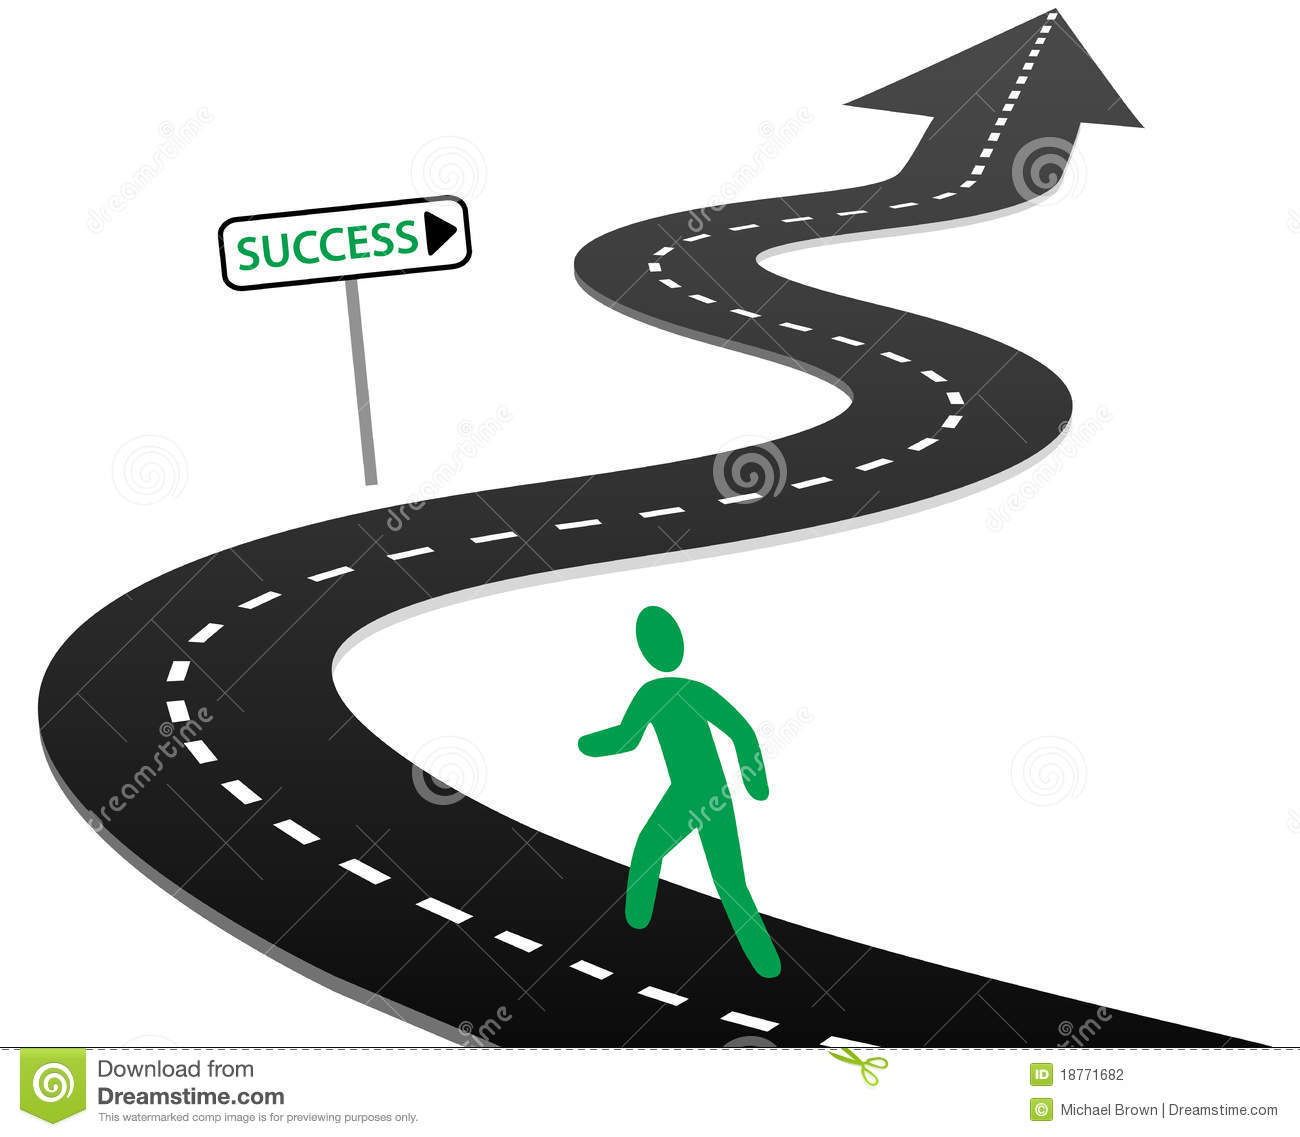 College road map clipart. Success cliparts life is